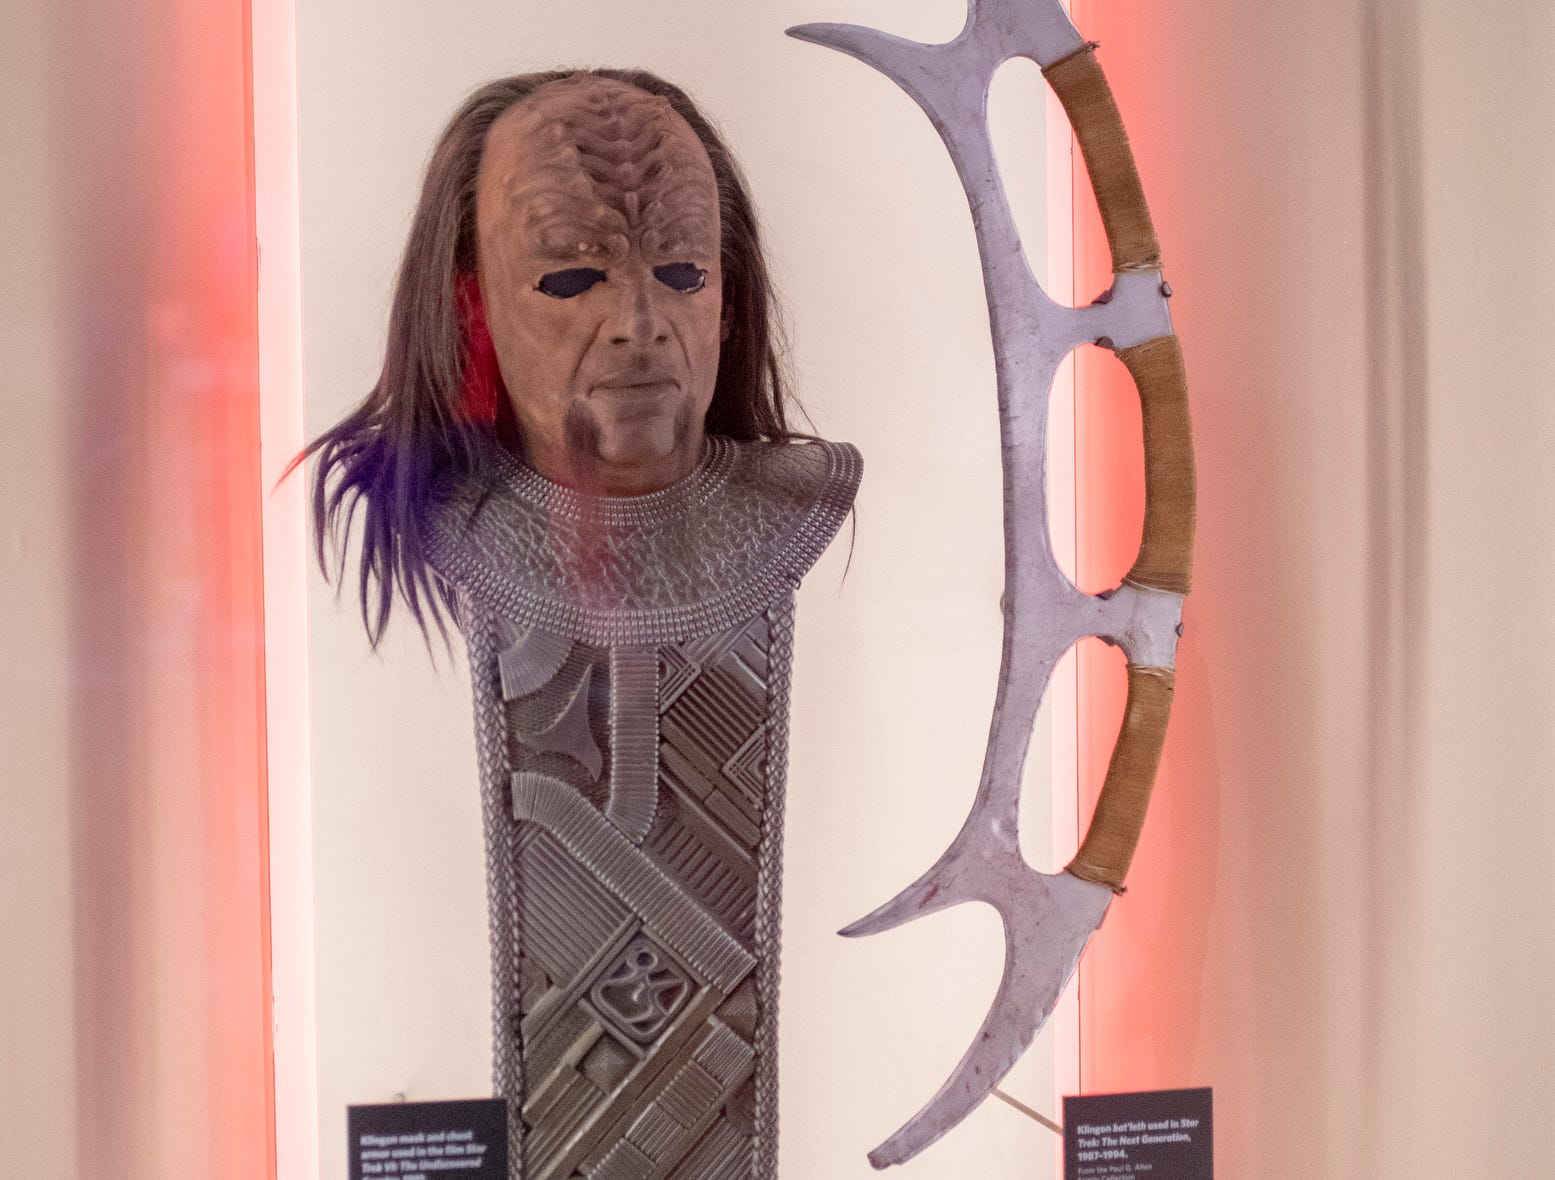 """A weapon called a bat'leth (right) and other Klingon paraphernalia are seen at The Children's Museum of Indianapolis, Indianapolis, Wednesday, Jan. 23, 2019. The """"Star Trek: Exploring New Worlds"""" exhibit is made up of set pieces, ship models and outfits used during various Star Trek shows and movies and is on display at the museum from Feb. 2 through April 7, 2019."""